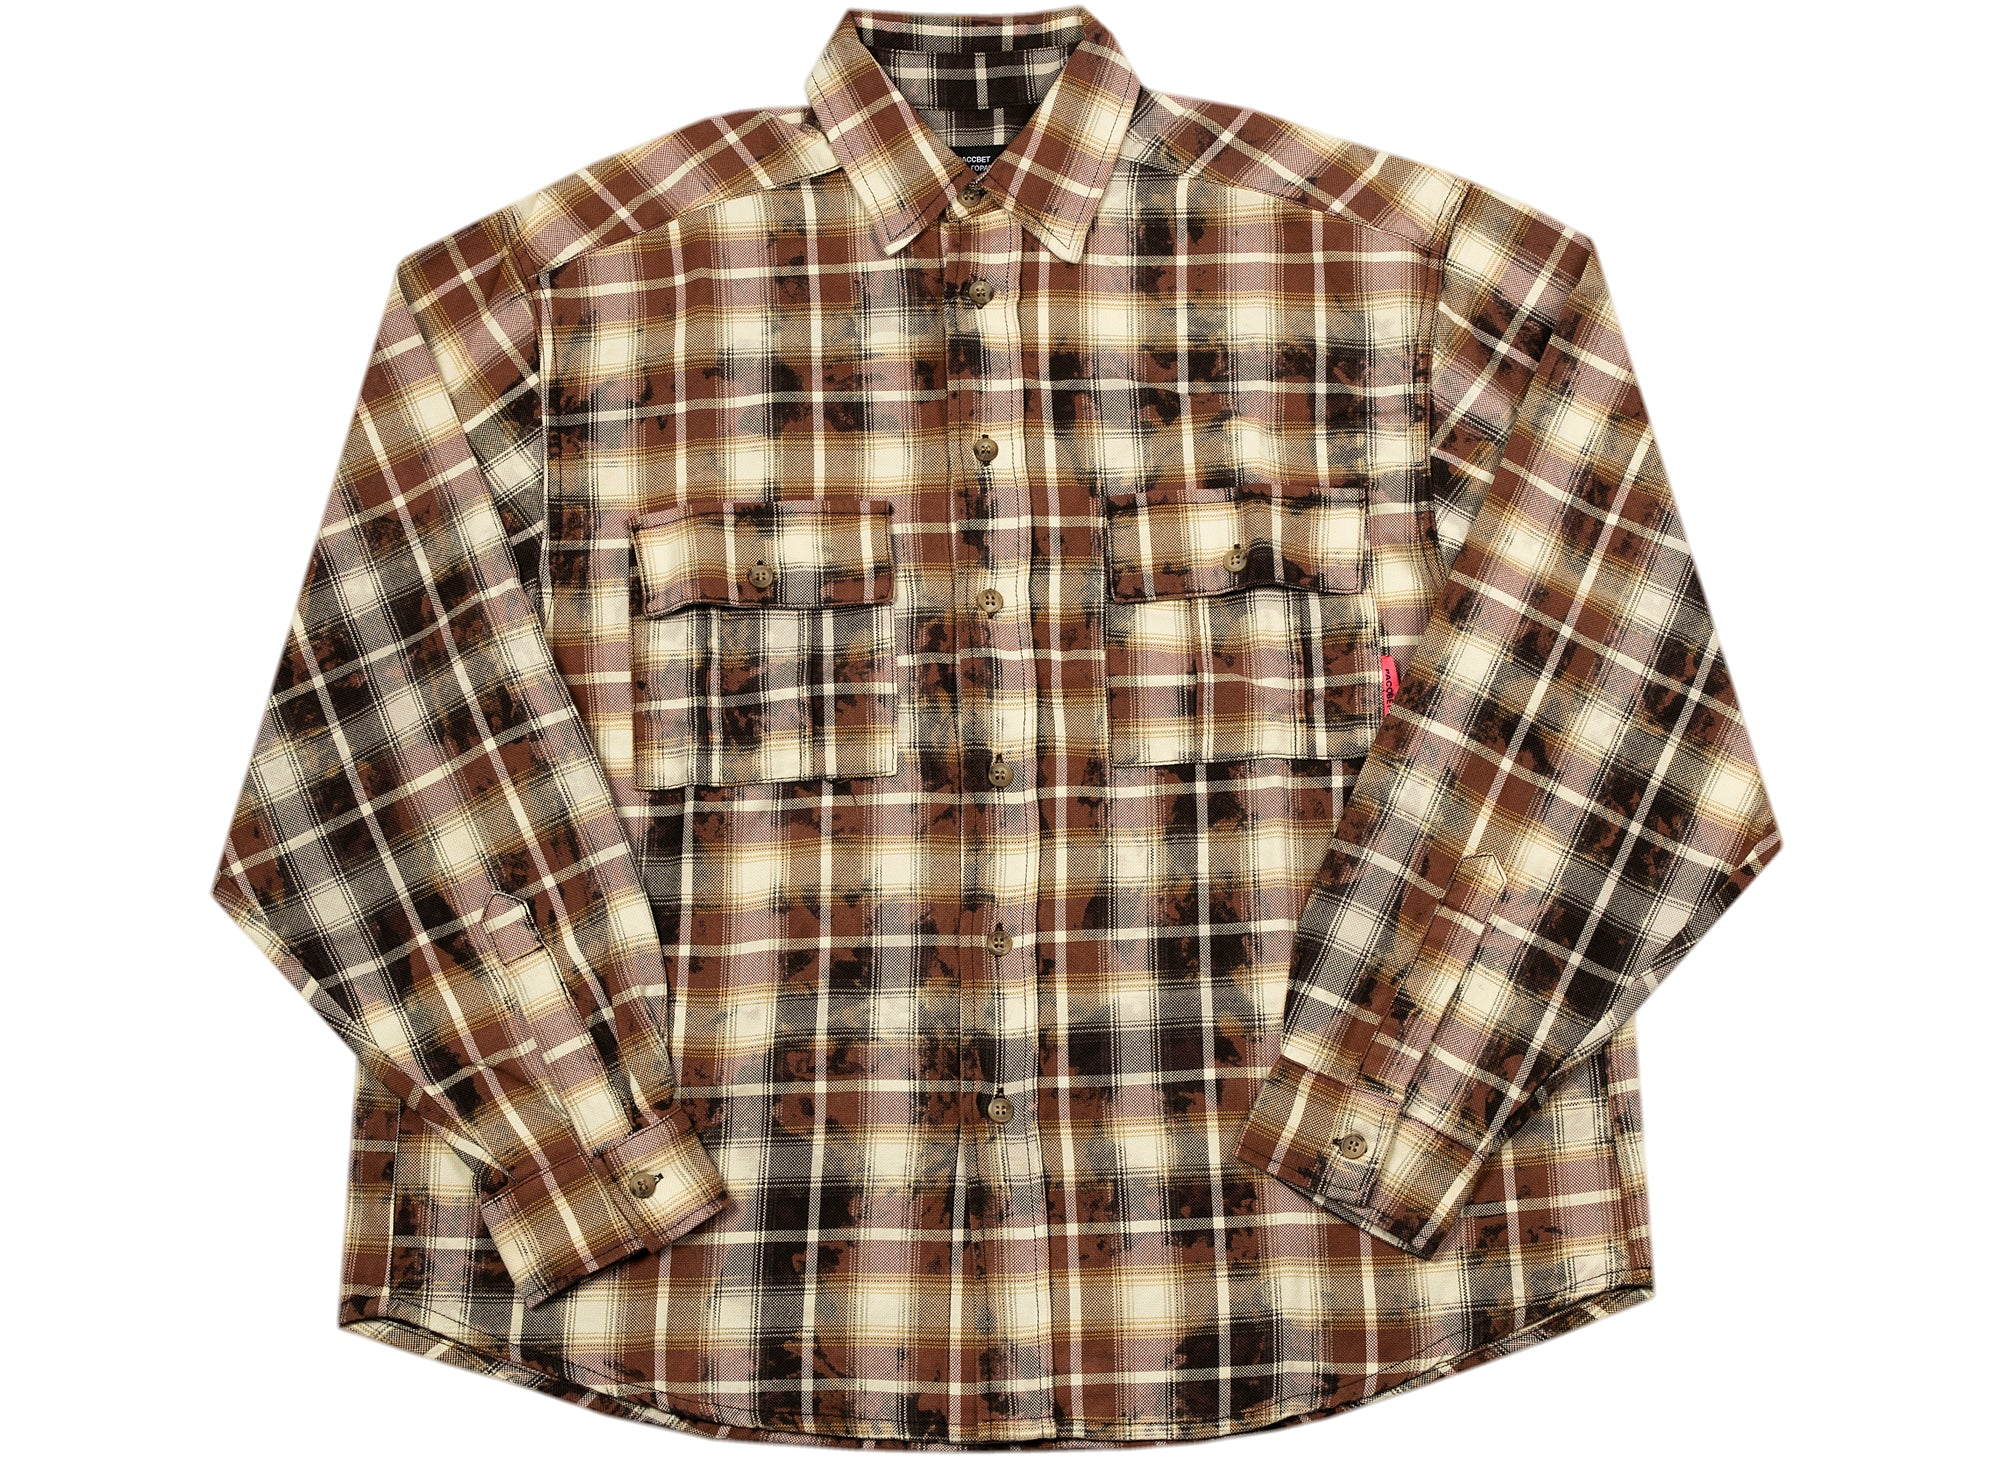 Rassvet (PACCBET) Bleached Check Shirt in Brown